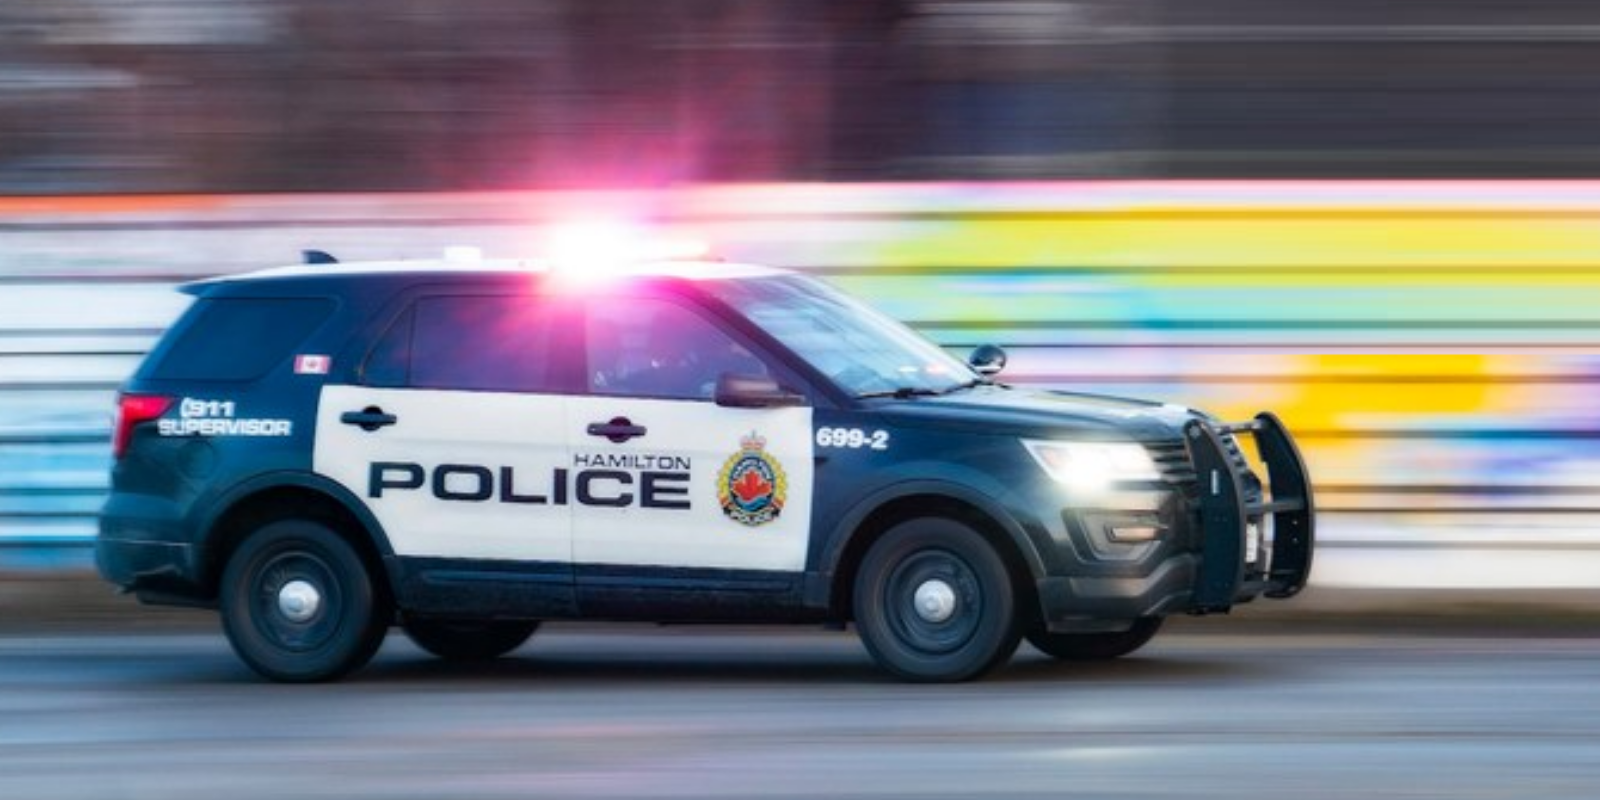 Hamilton police officer arrested, charged with sexual assault